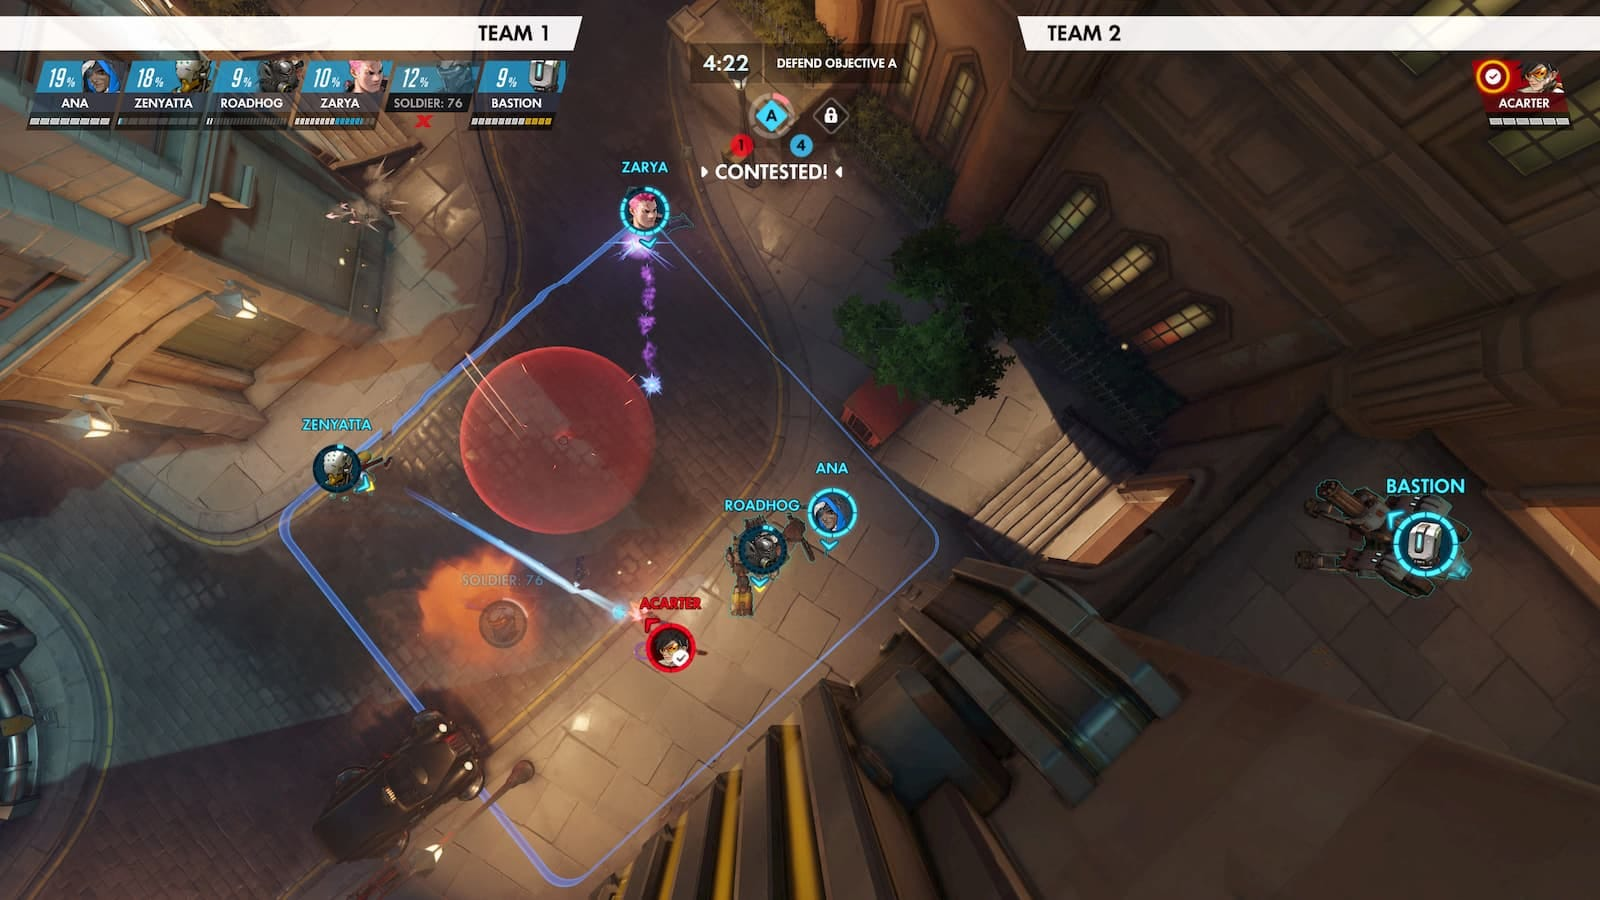 'Overwatch' replay system